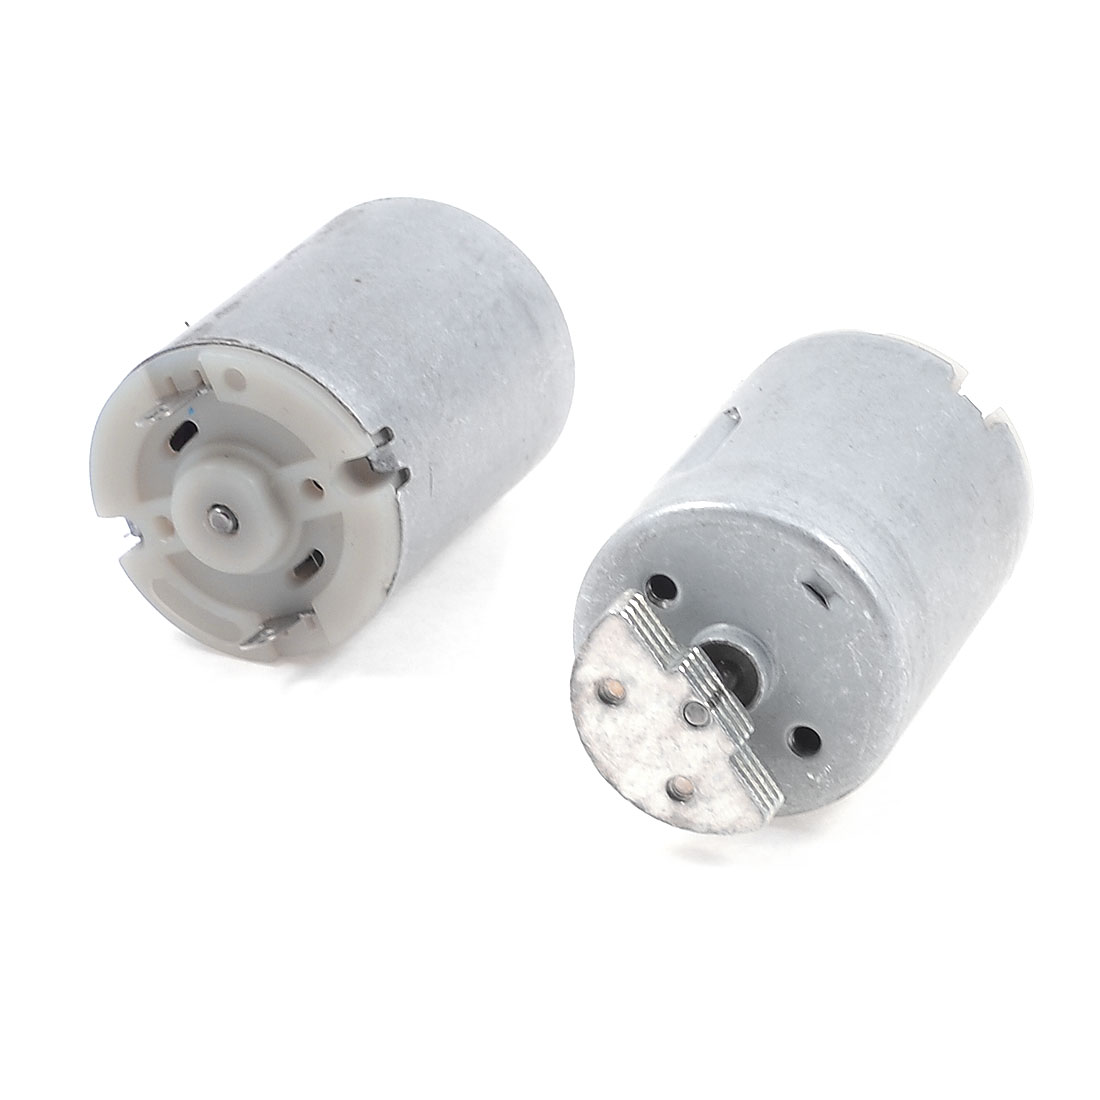 2-Pcs-DC-8-16V-Magnetic-Micro-Vibration-Motor-280-for-Electric-Massager-Toys